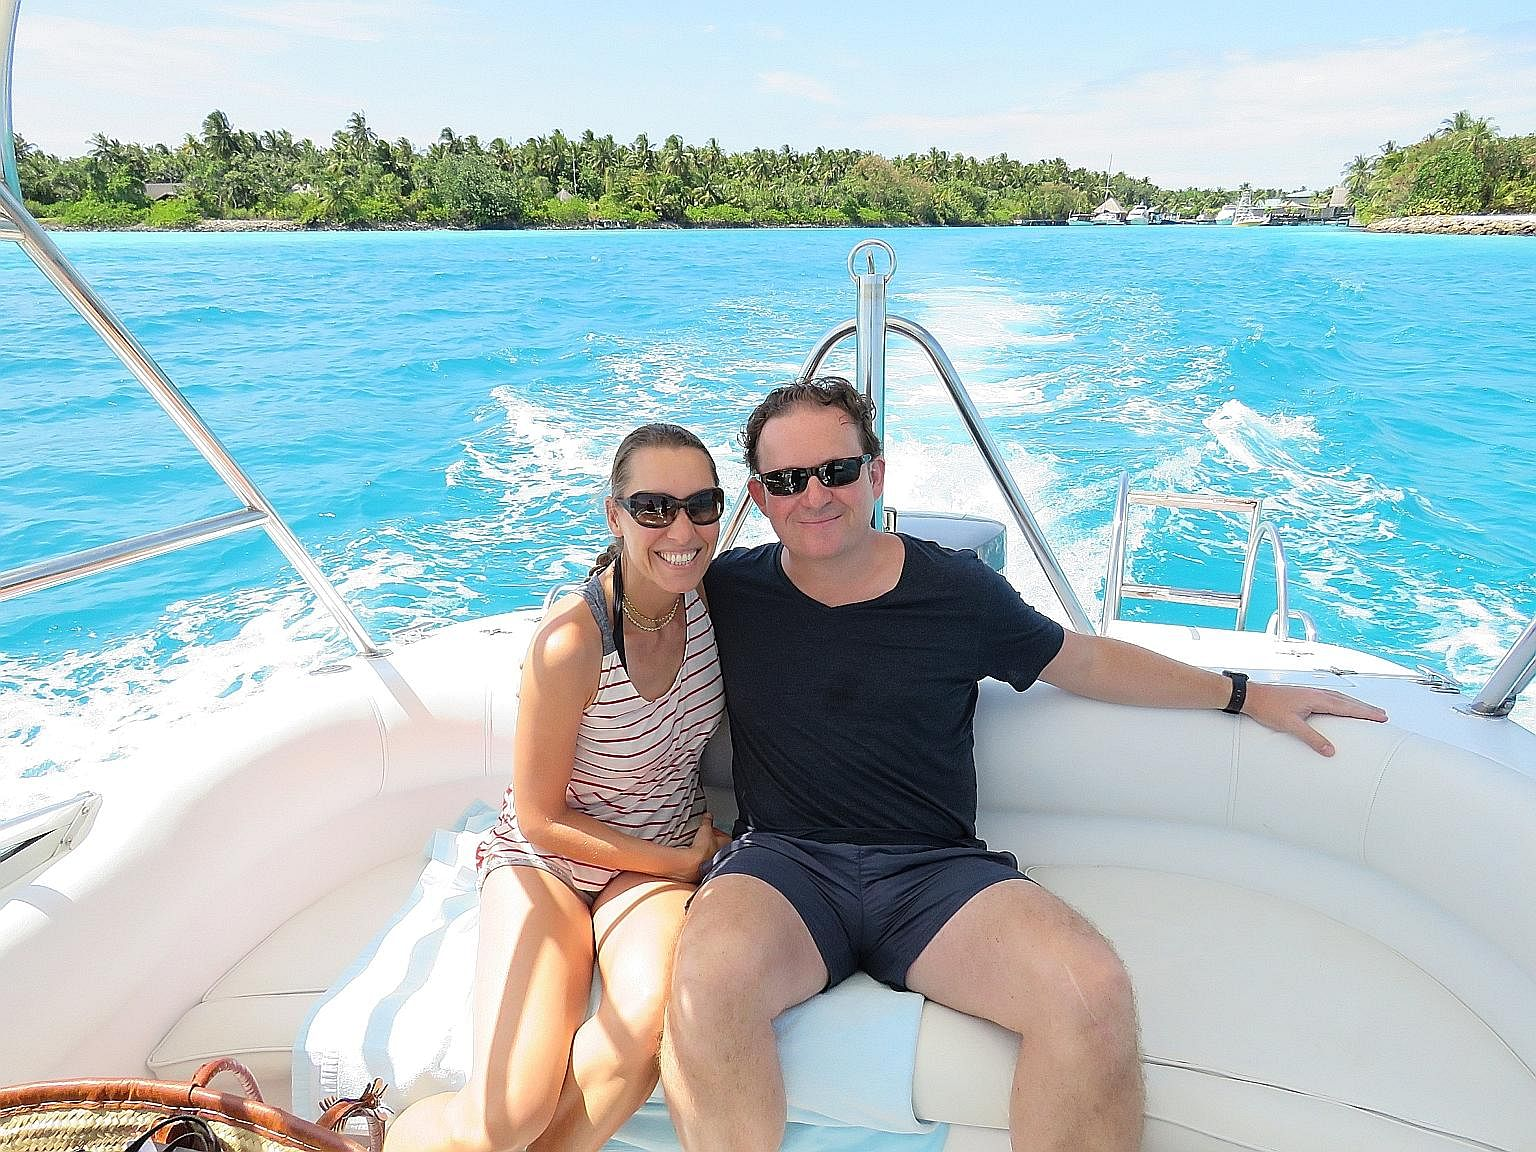 Mr and Mrs James Lohan on holiday in the Maldives.